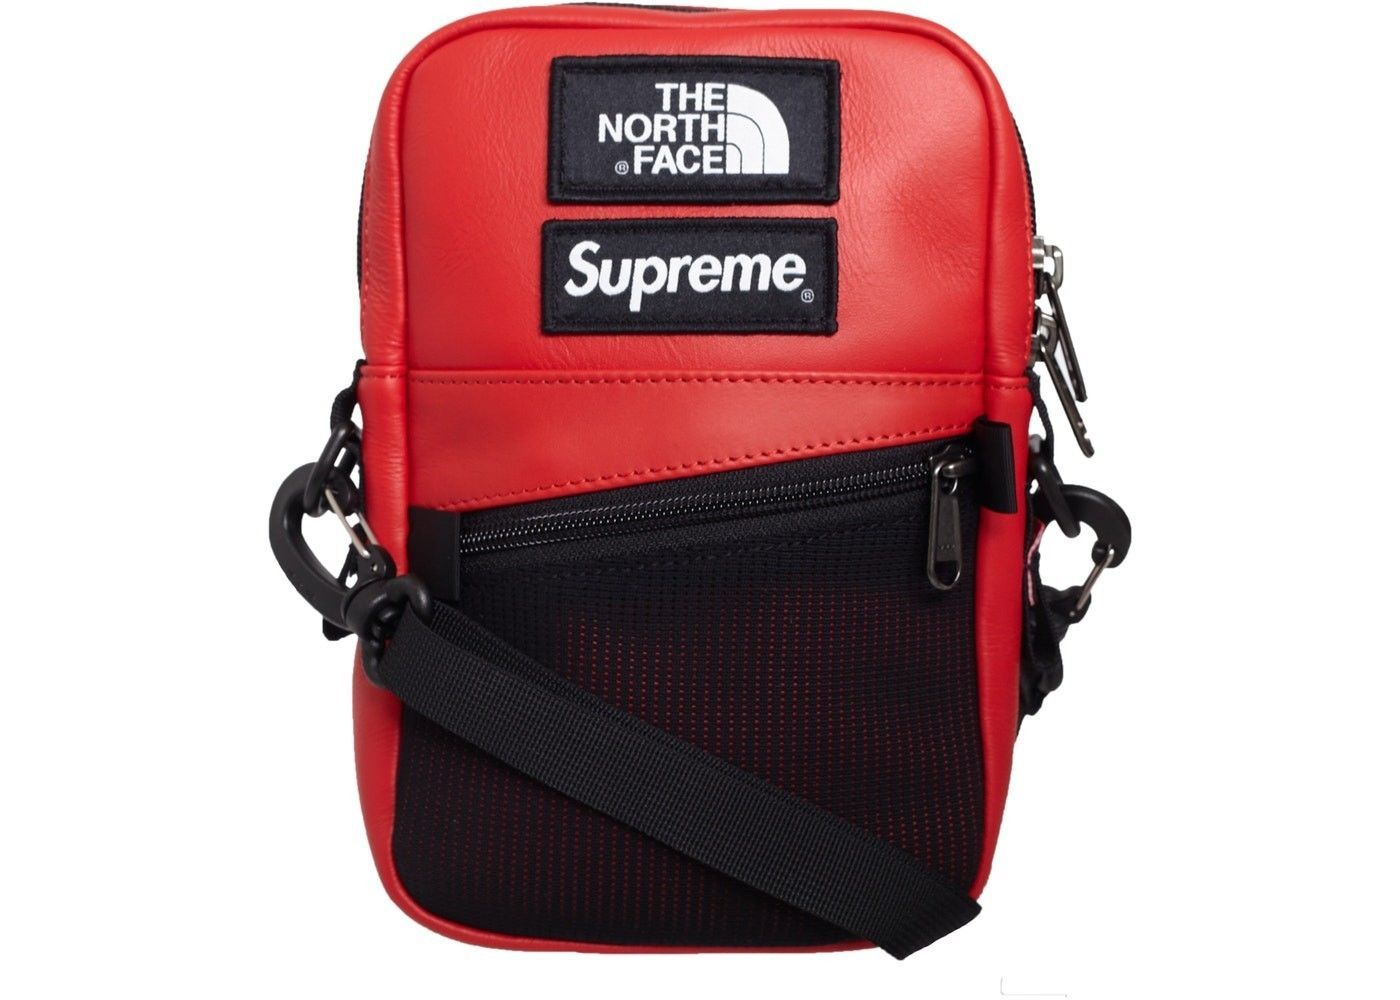 a2425e323 Supreme x The North Face (TNF) Shoulder Bag Red FW18 IN HAND | eBay ...